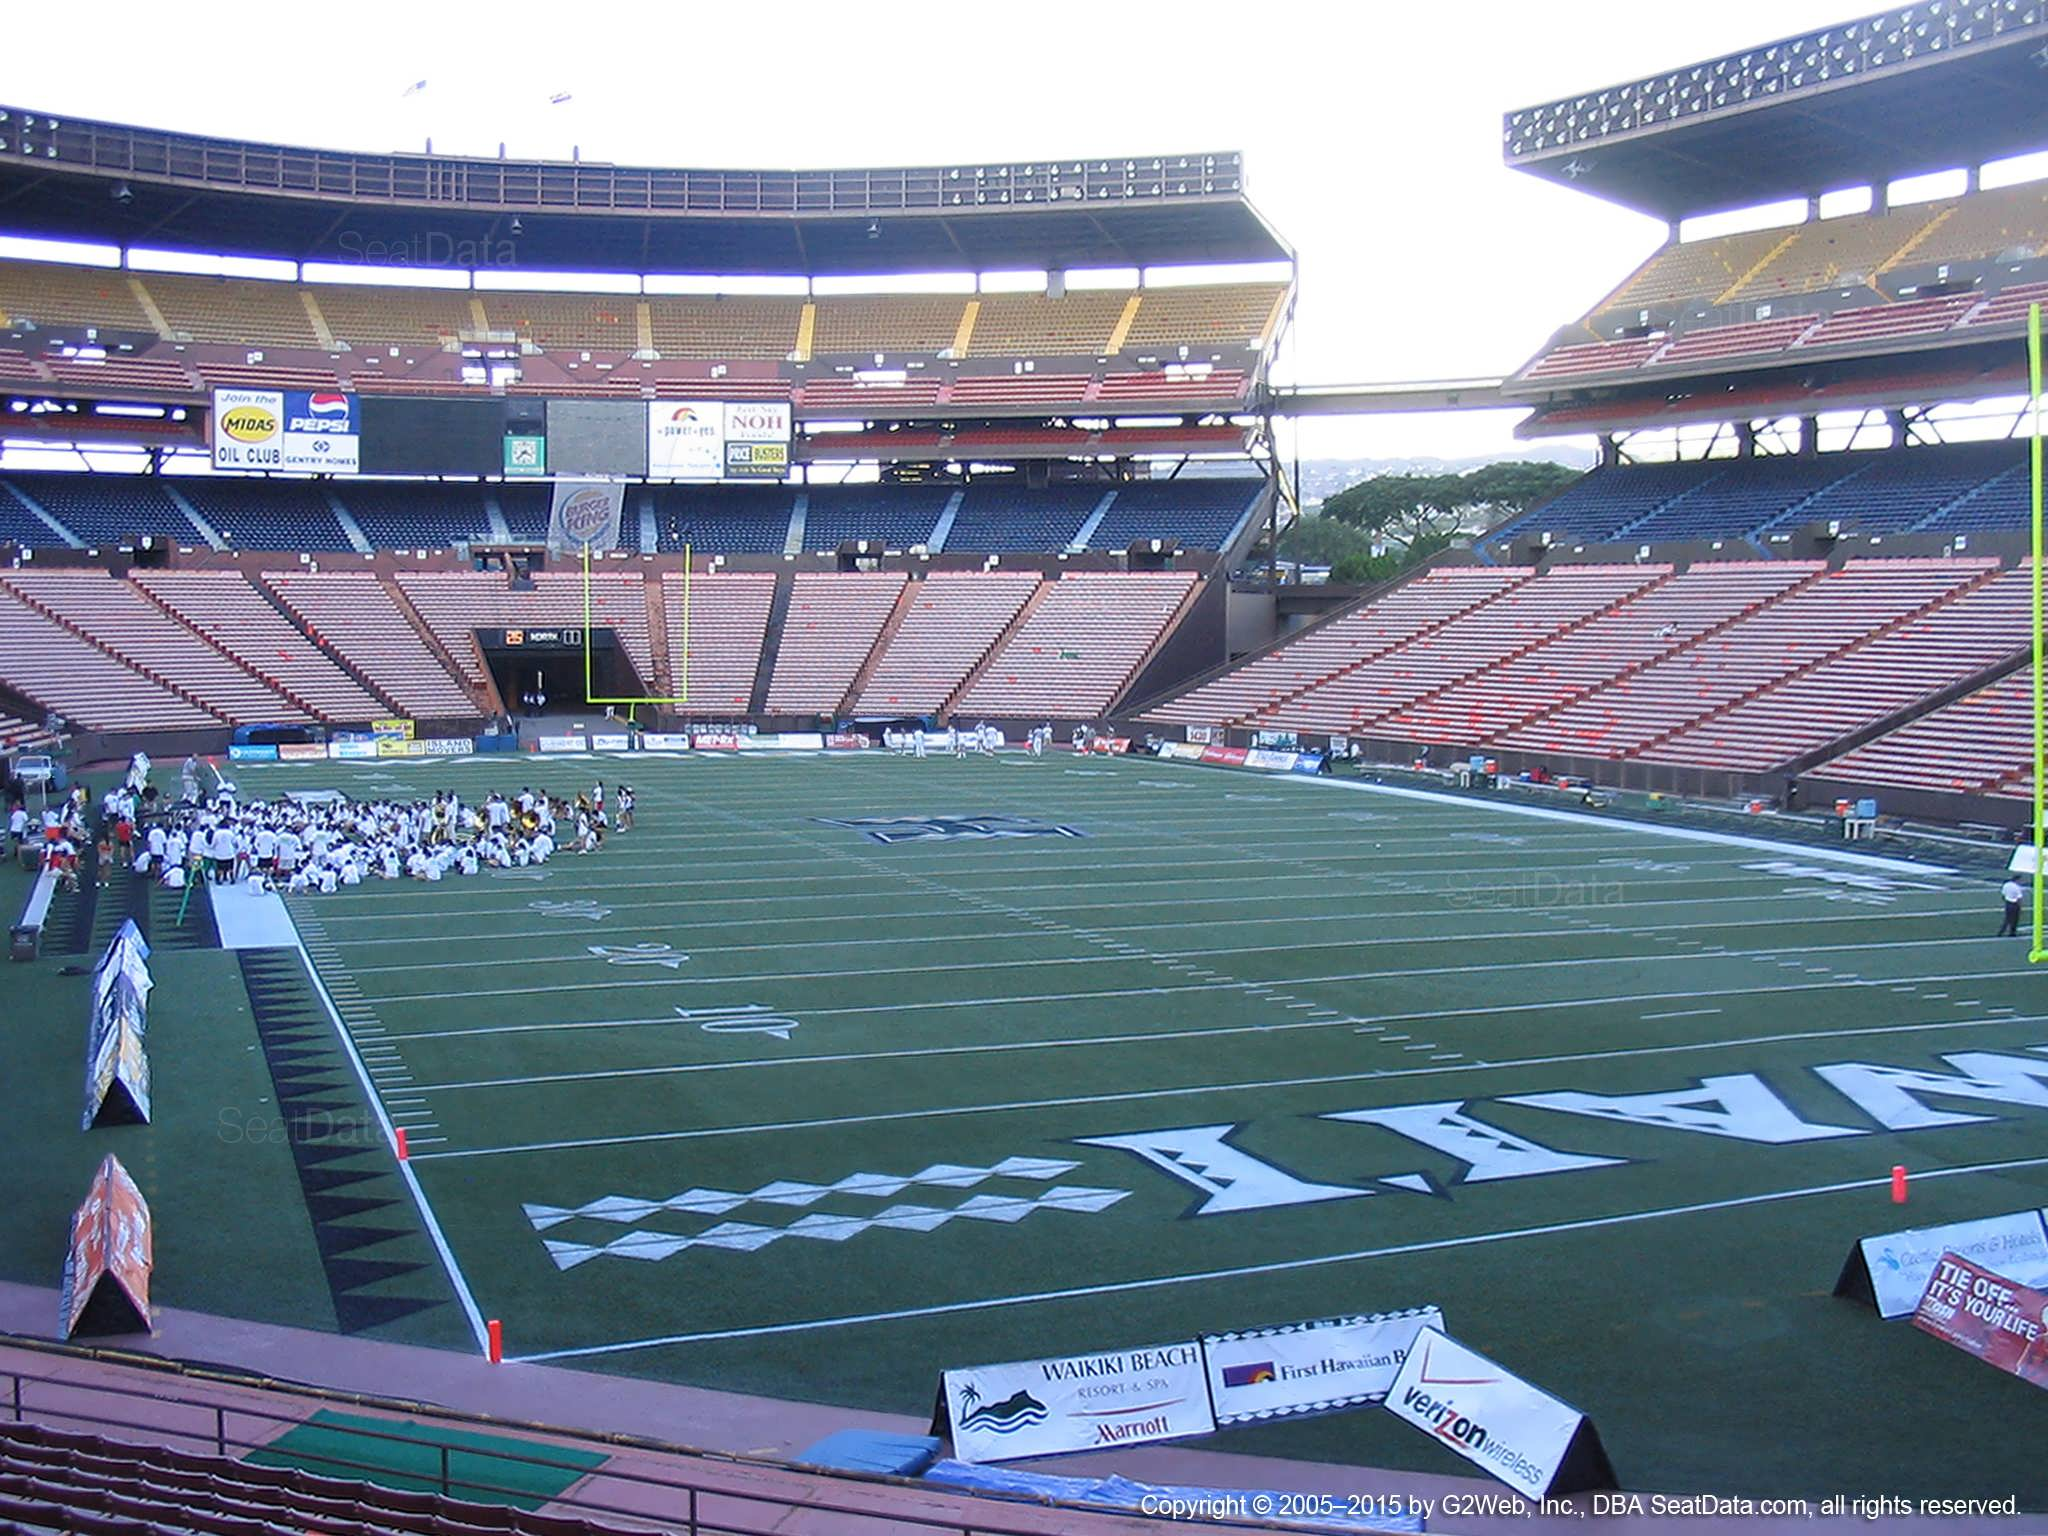 Seat View for Aloha Stadium Orange D